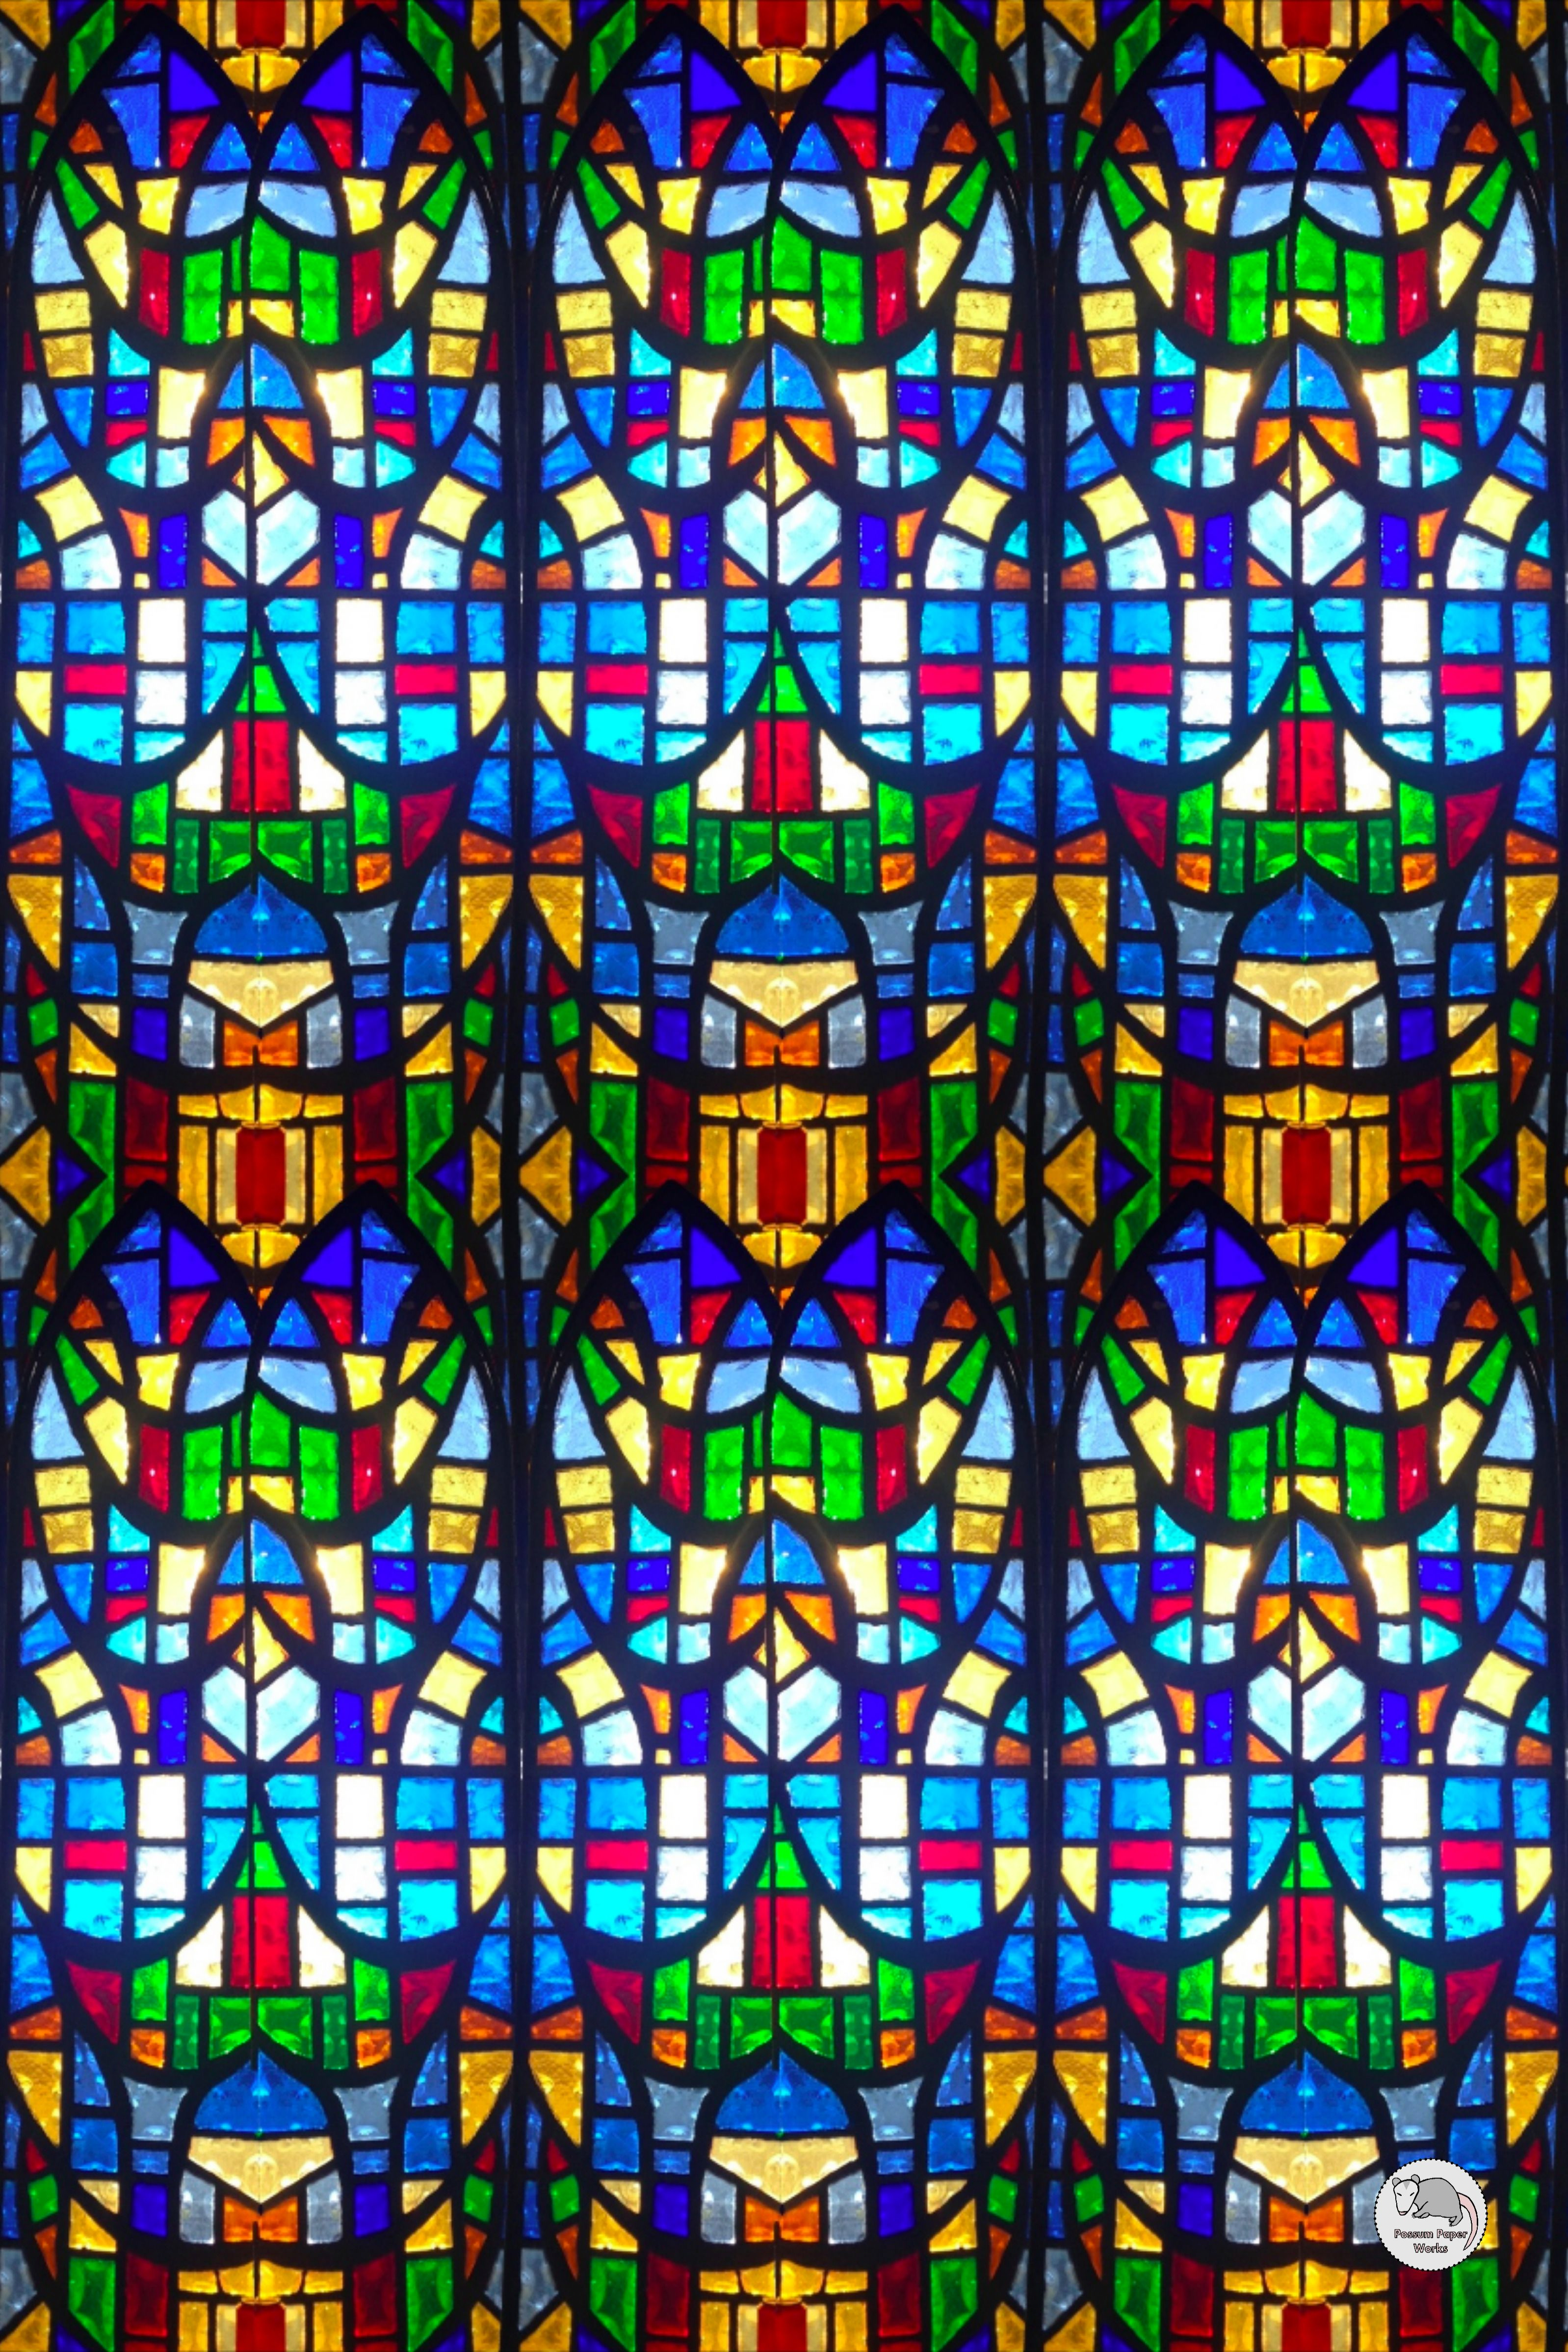 Stained Glass Phone Wallpaper Phone Wallpaper Wallpaper Stained Glass